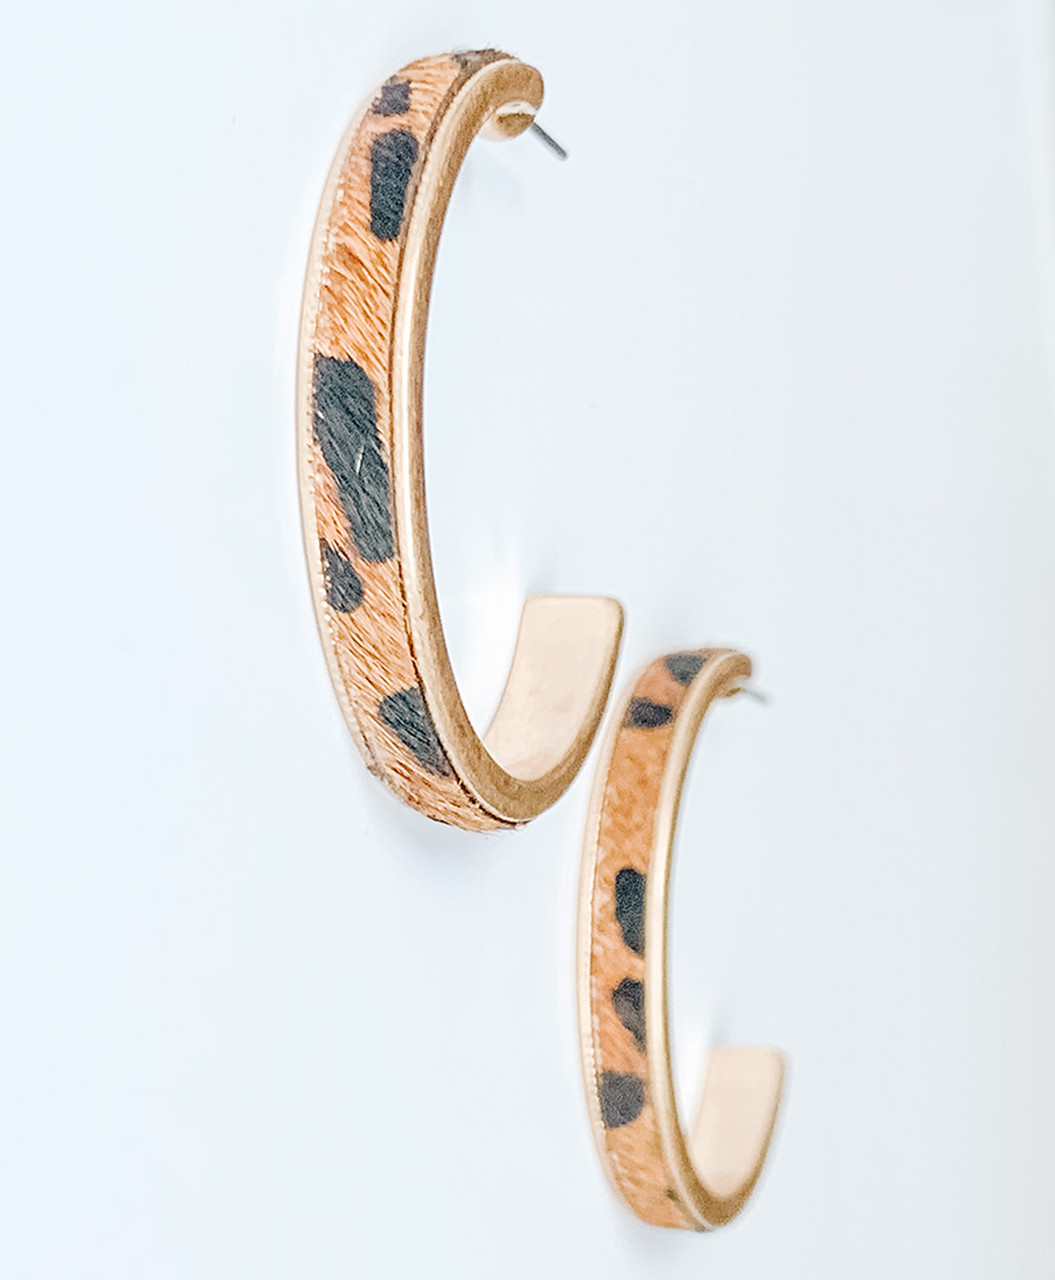 Black & brown calf-hair hoop earrings, Nickel and lead free.